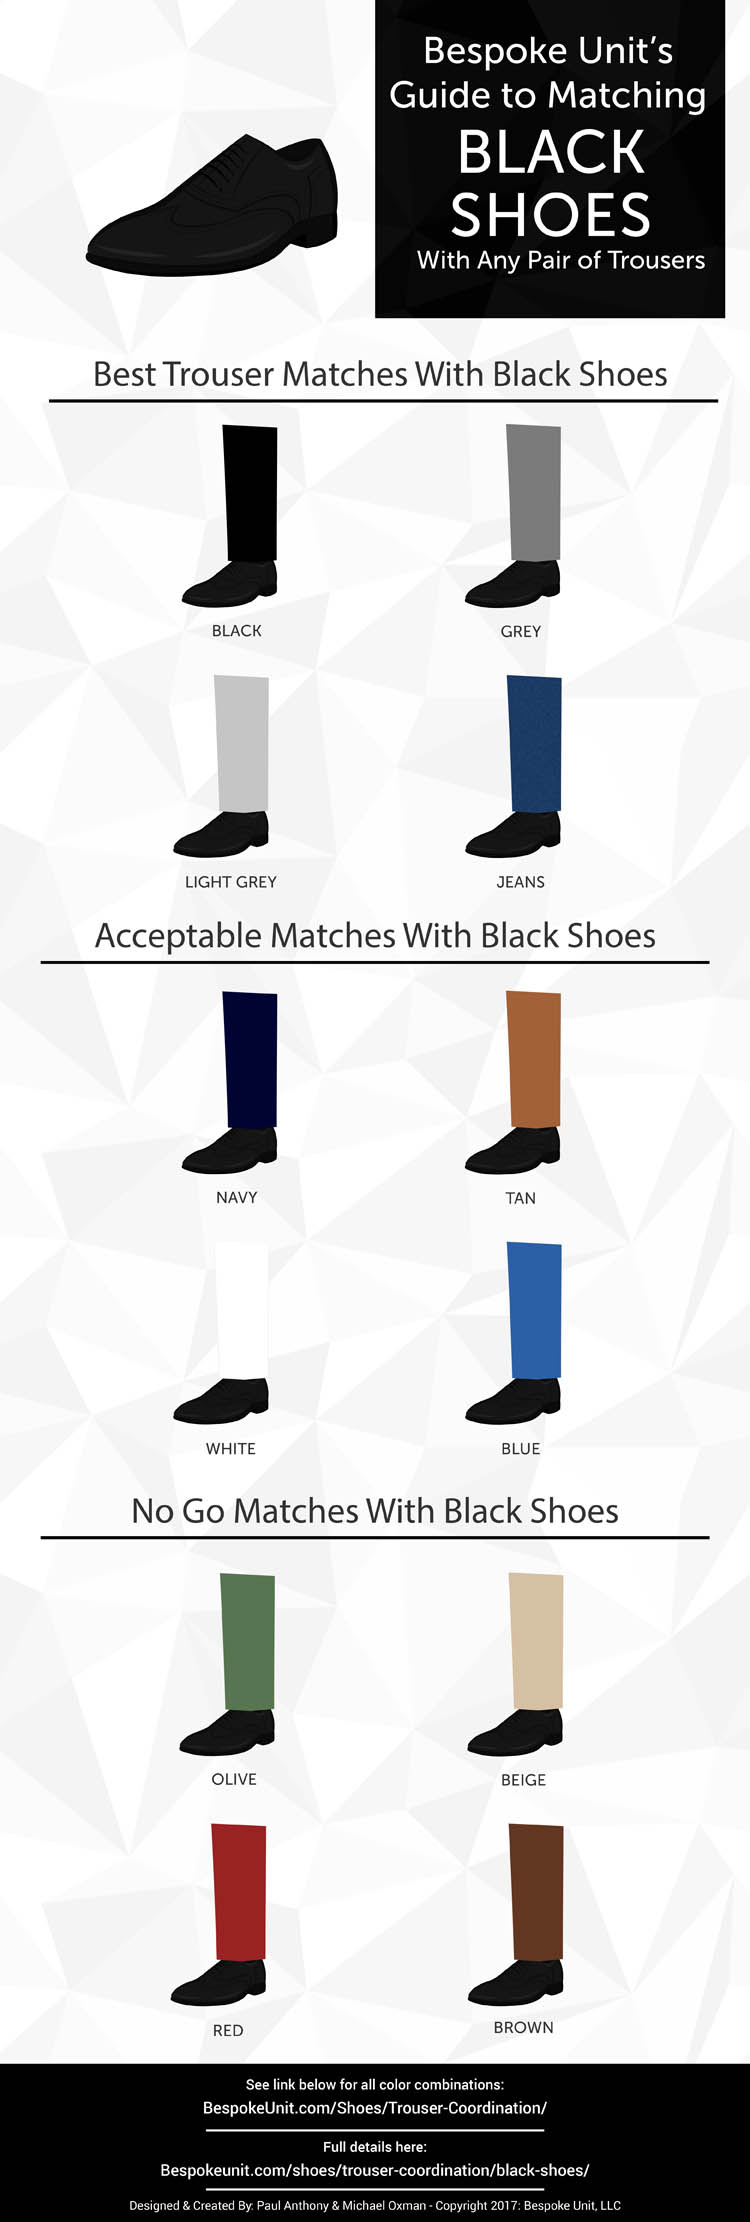 Black-Shoes-Coordination-Graphic